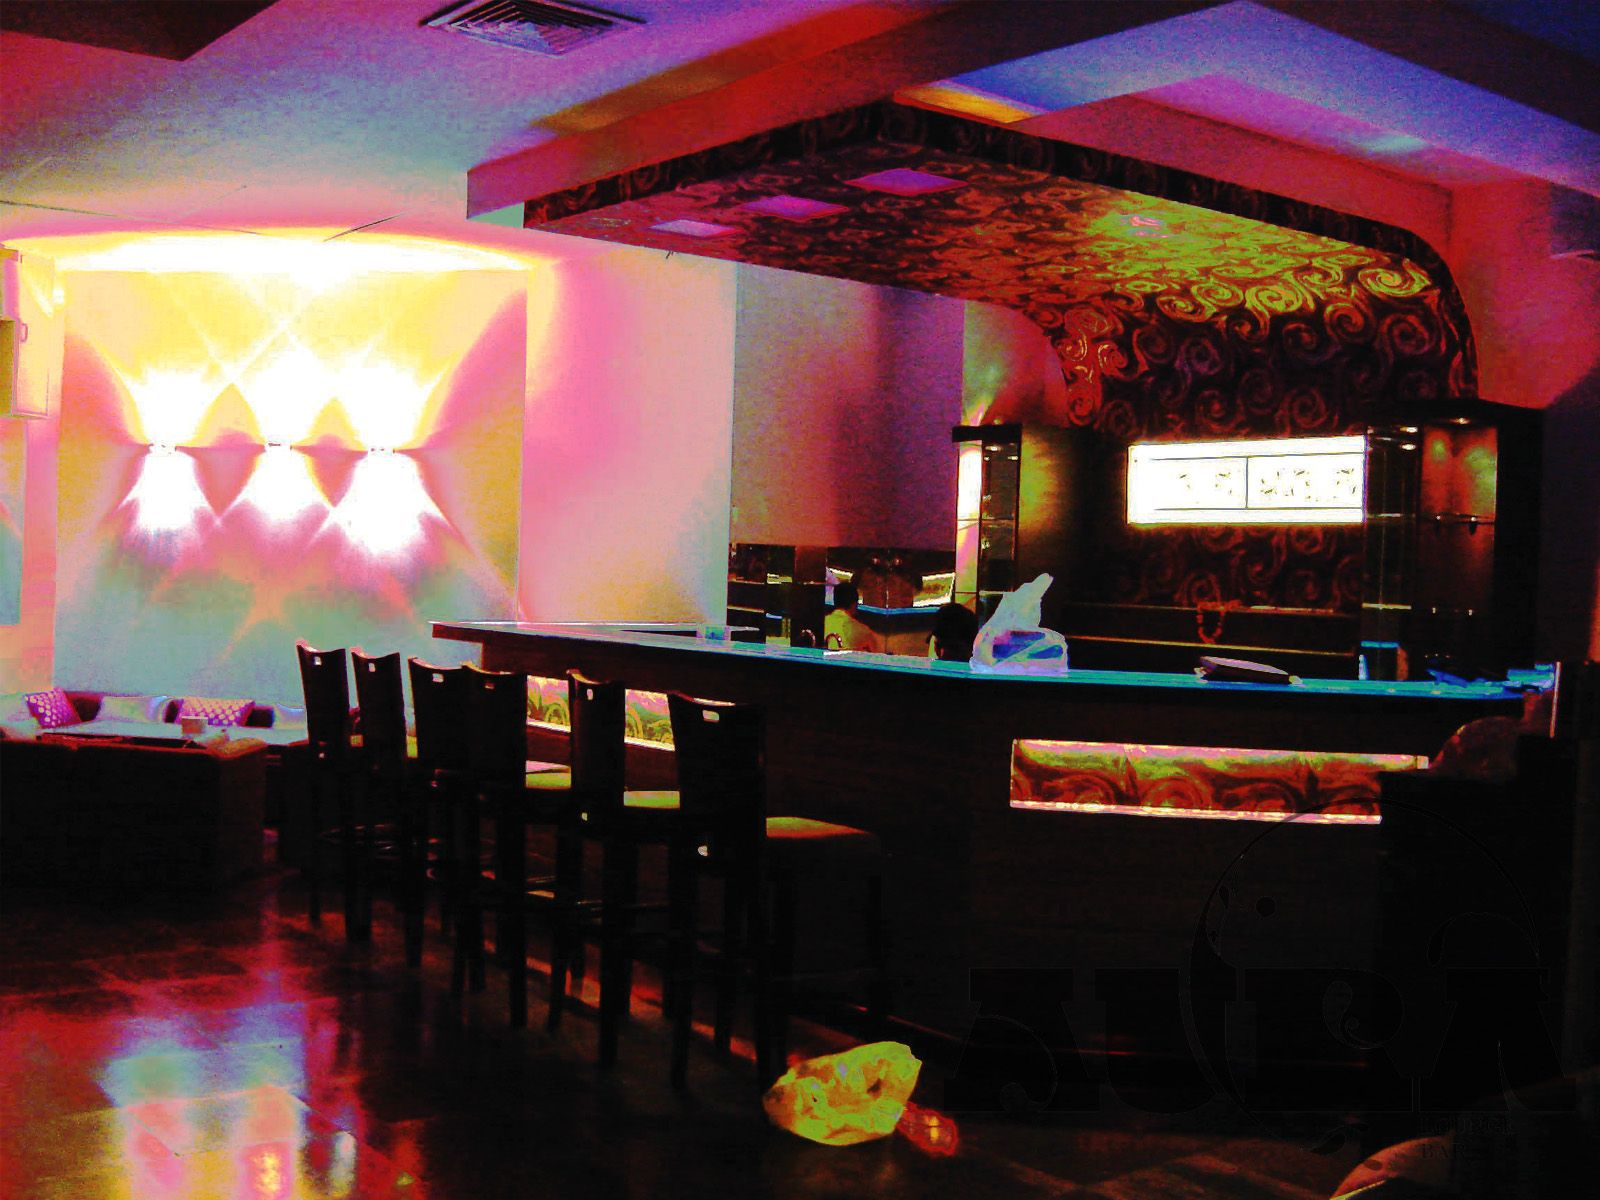 Home About Us Services The Bar Hookah Bar Restaurant Lounge